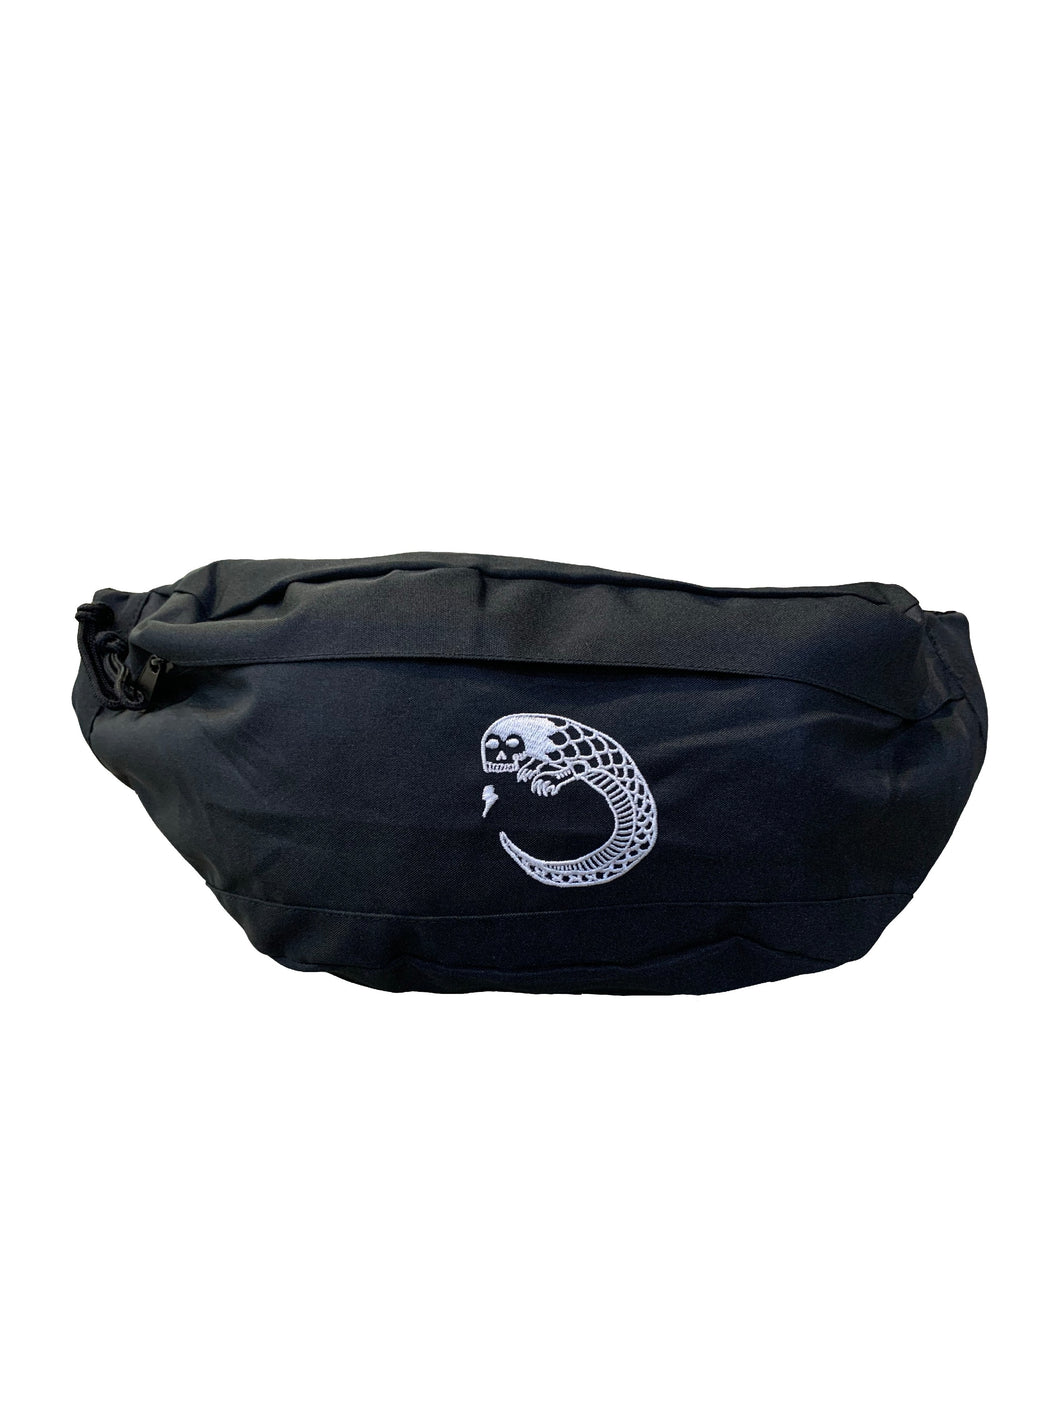 James Enox Scull Snake Oversized Across Body Bag Black